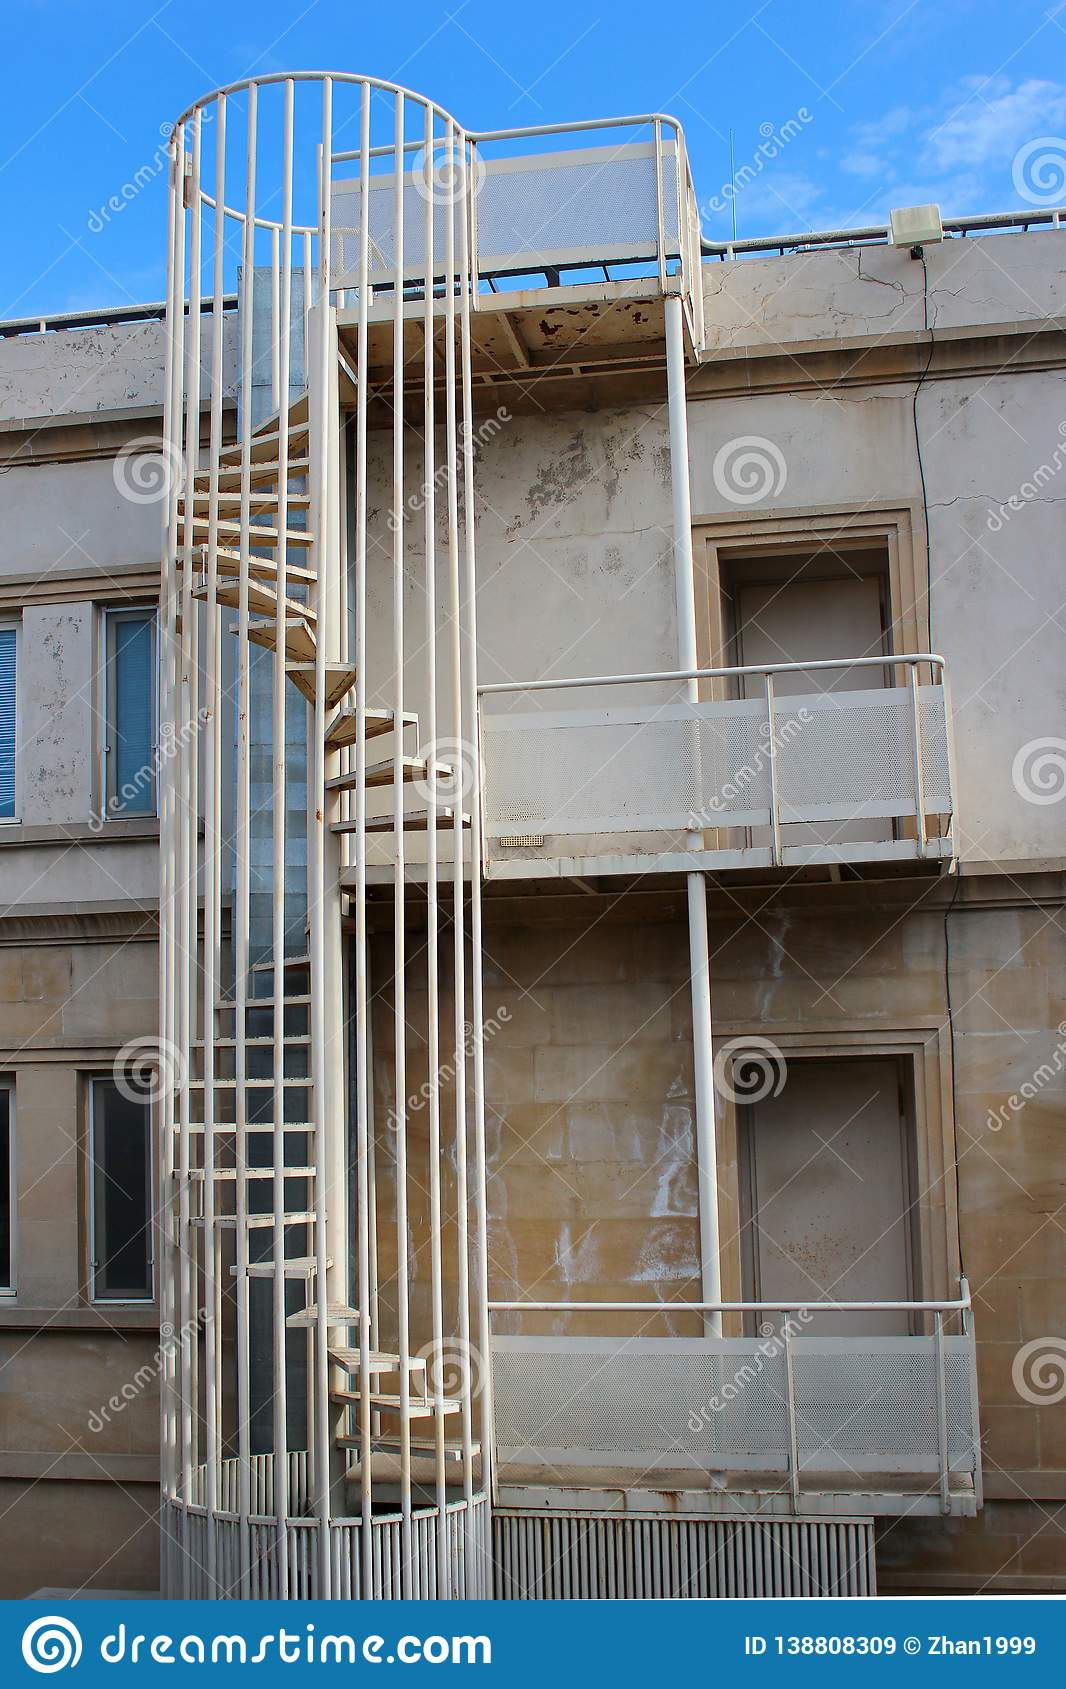 Outdoor Spiral Stairs Fire Escape On A Building Stock Image Image Of Safe Exterior 138808309